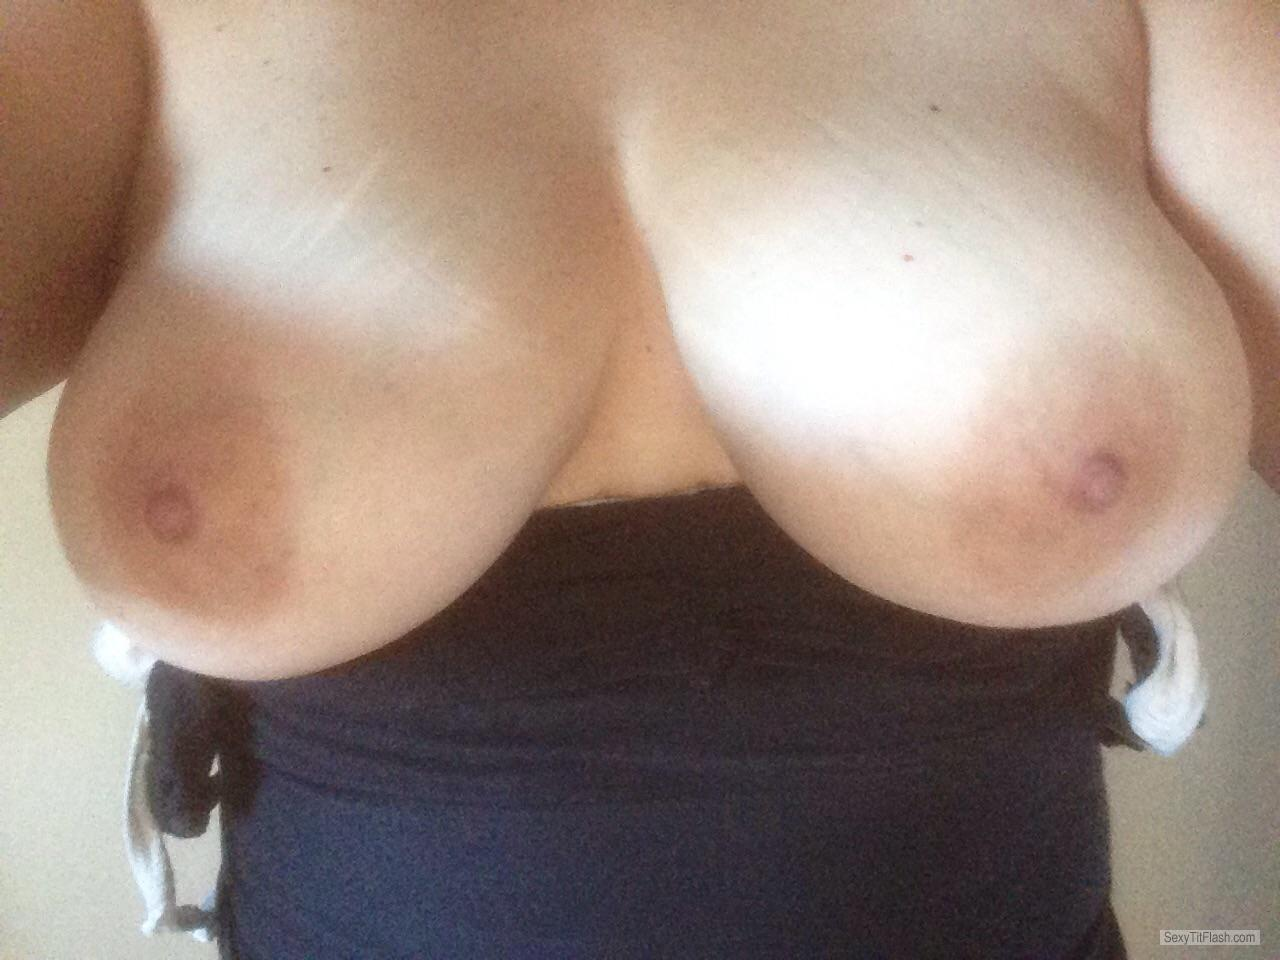 Tit Flash: Room Mate's Big Tits (Selfie) - Cum Wueen from Canada